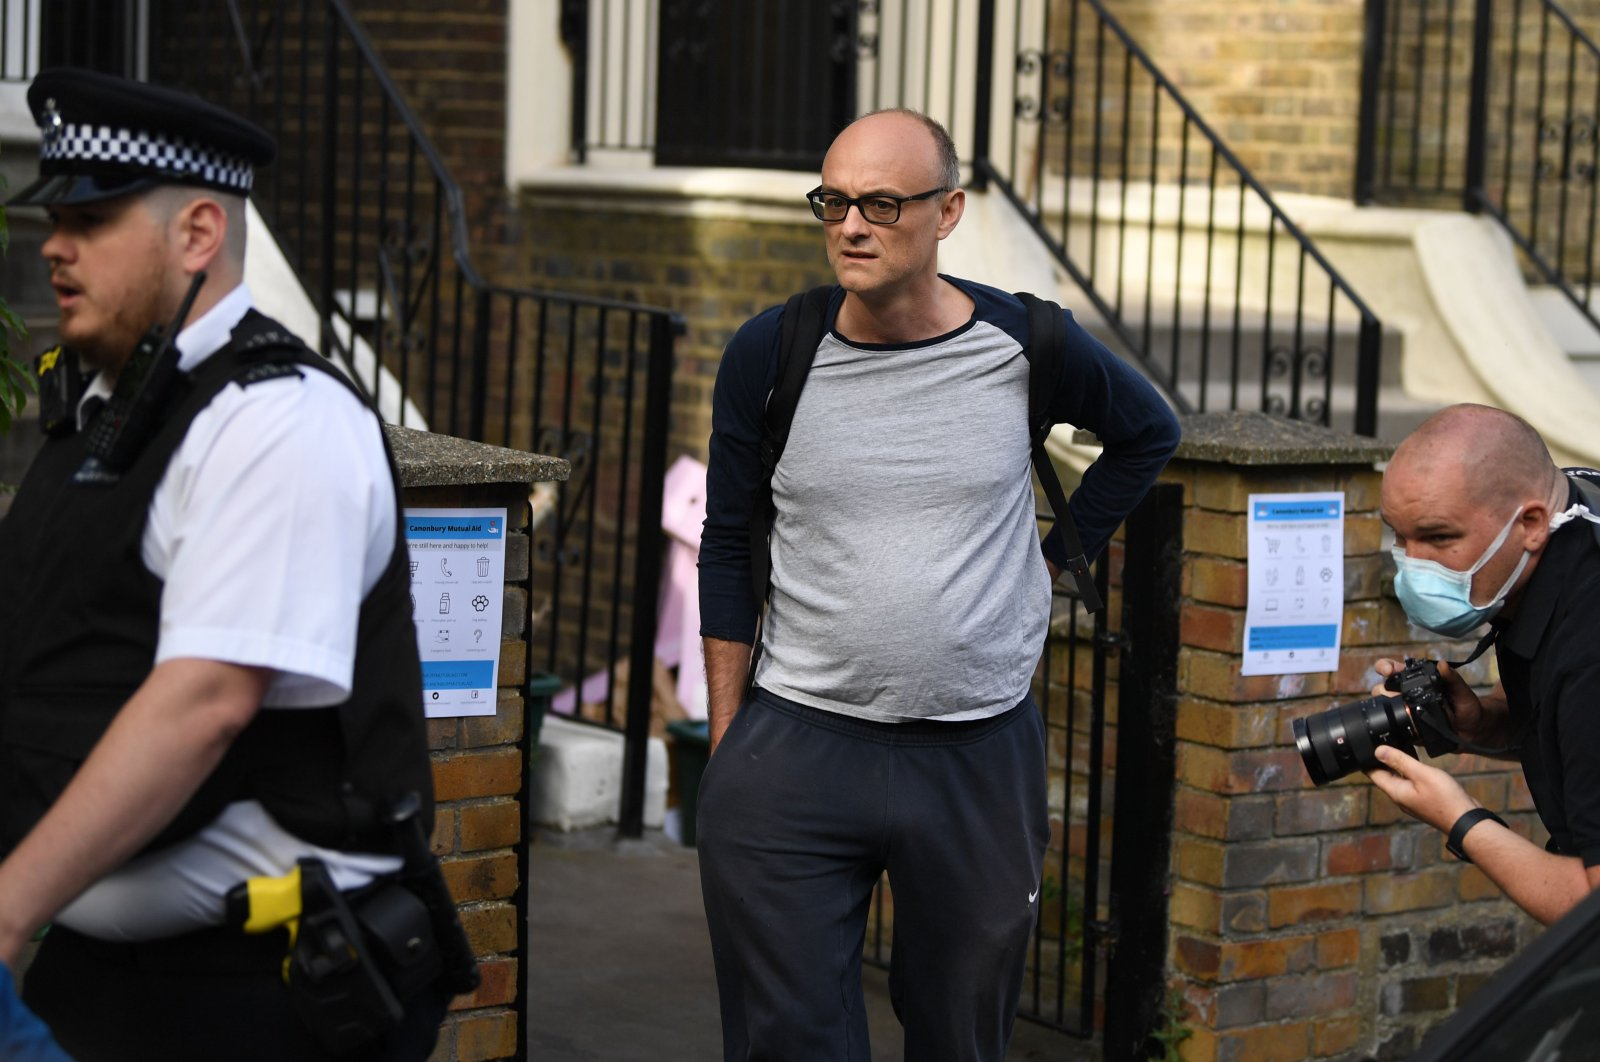 Number 10 special adviser Dominic Cummings leaves his residence, London, England, May 26, 2020. (AFP Photo)